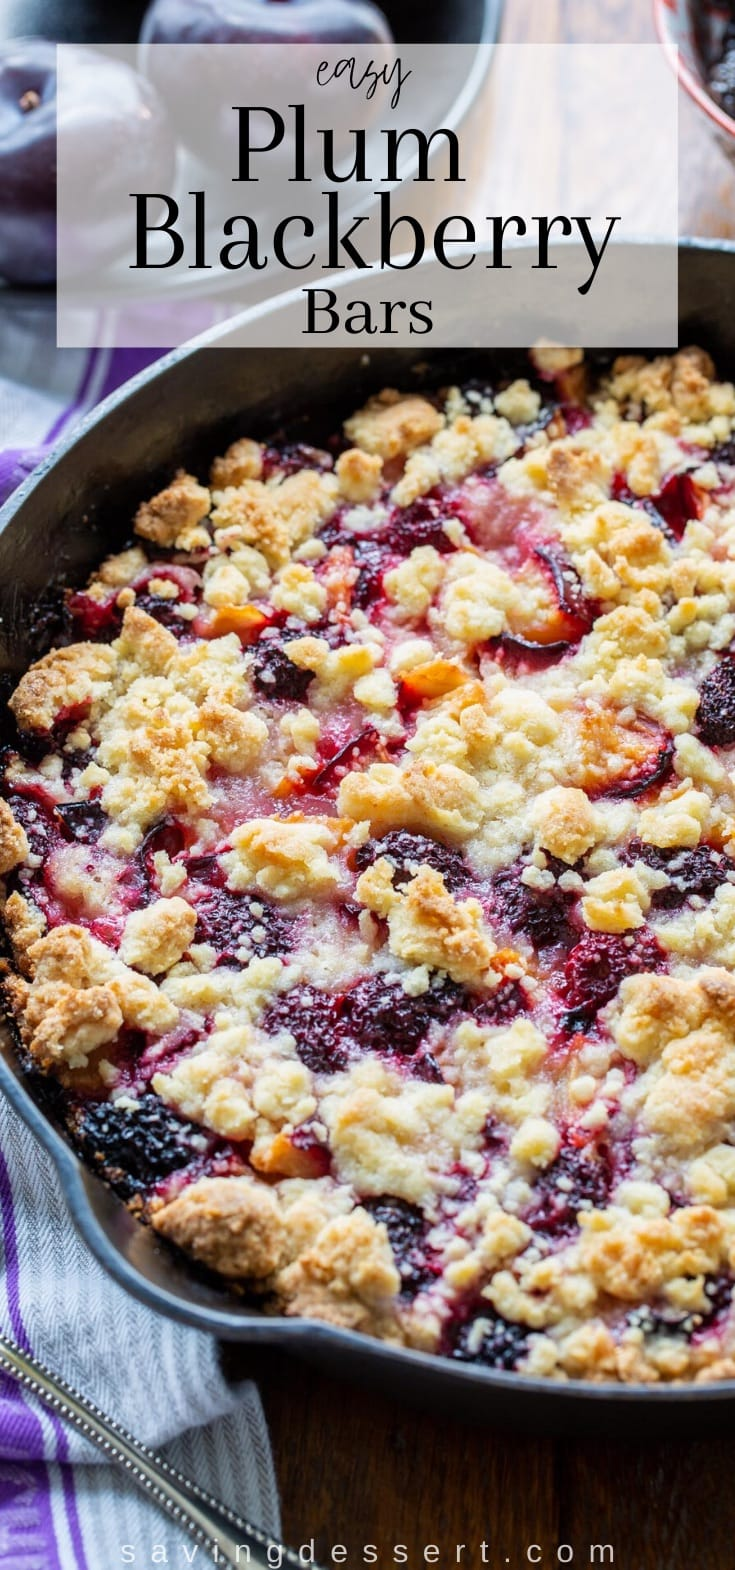 A cast iron skillet filled with blackberry plum crumble bars